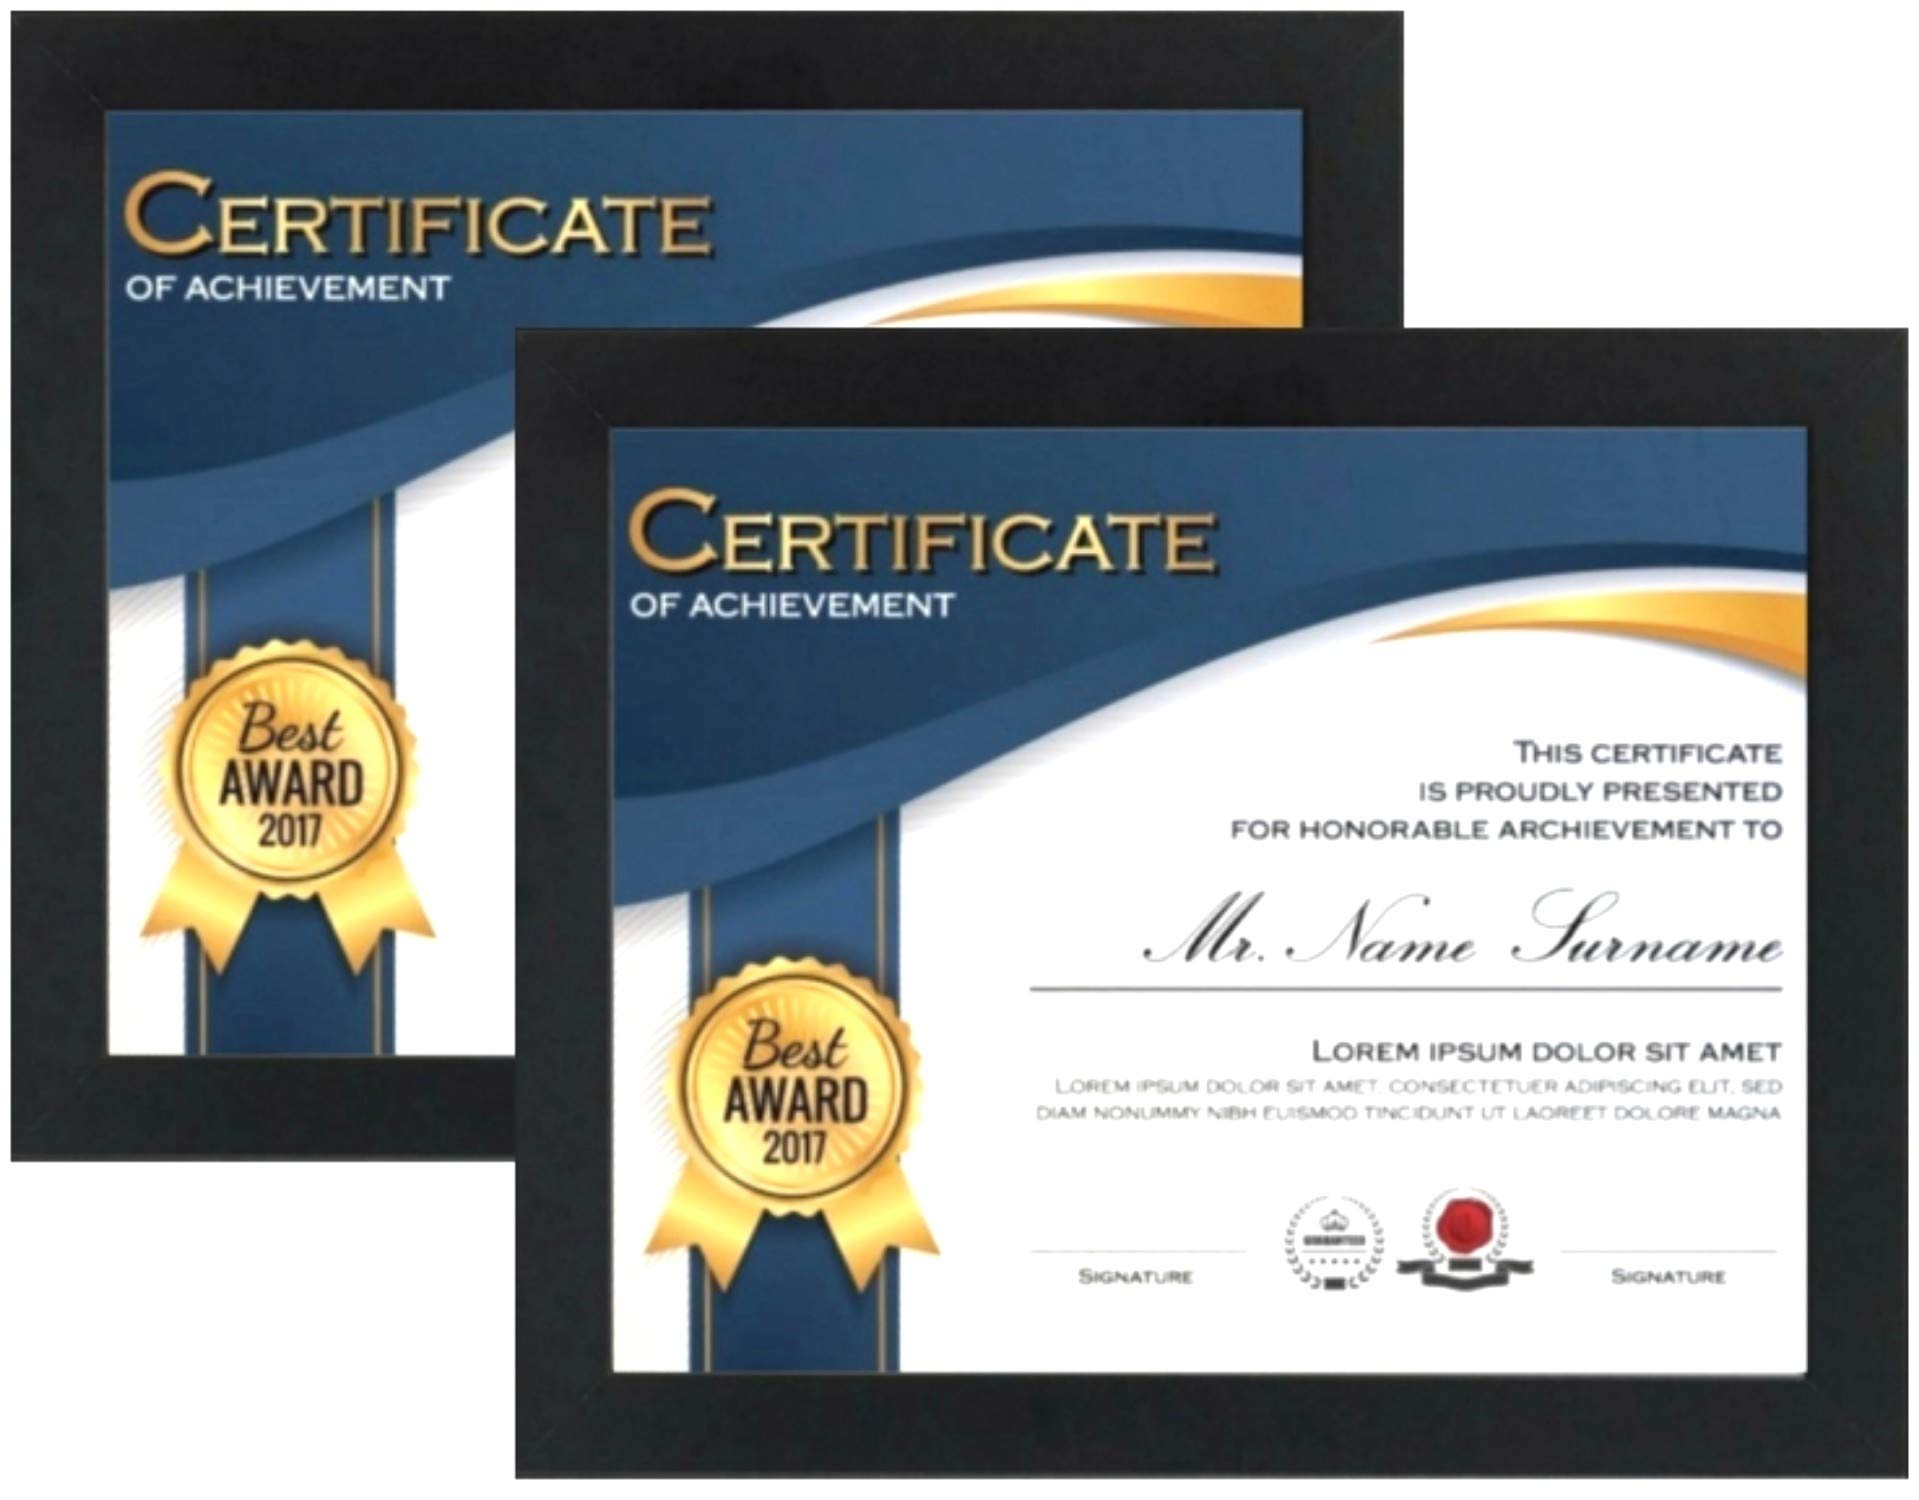 Tasse Verre 8.5 x11 Picture Frames (2-Pack) - Real Glass Front - Displays Certificates, Documents, and 8.5x11 Photos - Wood - Hang Vertically or Horizontally - Multi-Pack Degree Award Standard Paper by Tasse Verre